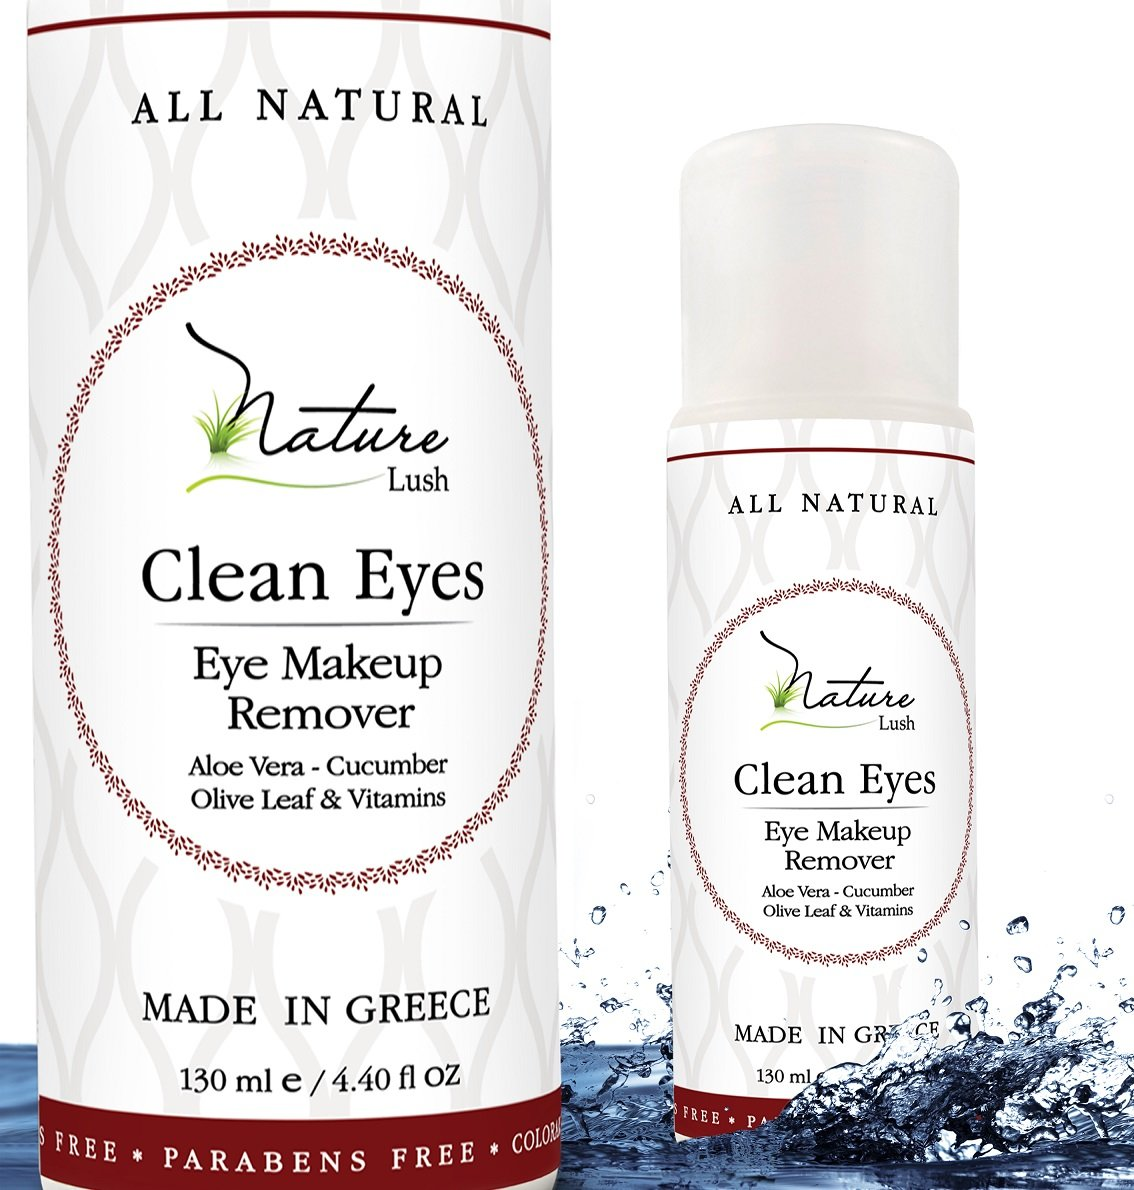 The Best Natural Eye & Face Makeup Remover - Oil Free - Rich Vitamins - Non Irritating - No Hazardous Chemicals - 'Clean Eyes' By Nature Lush - Made In Greece 4.4 oz